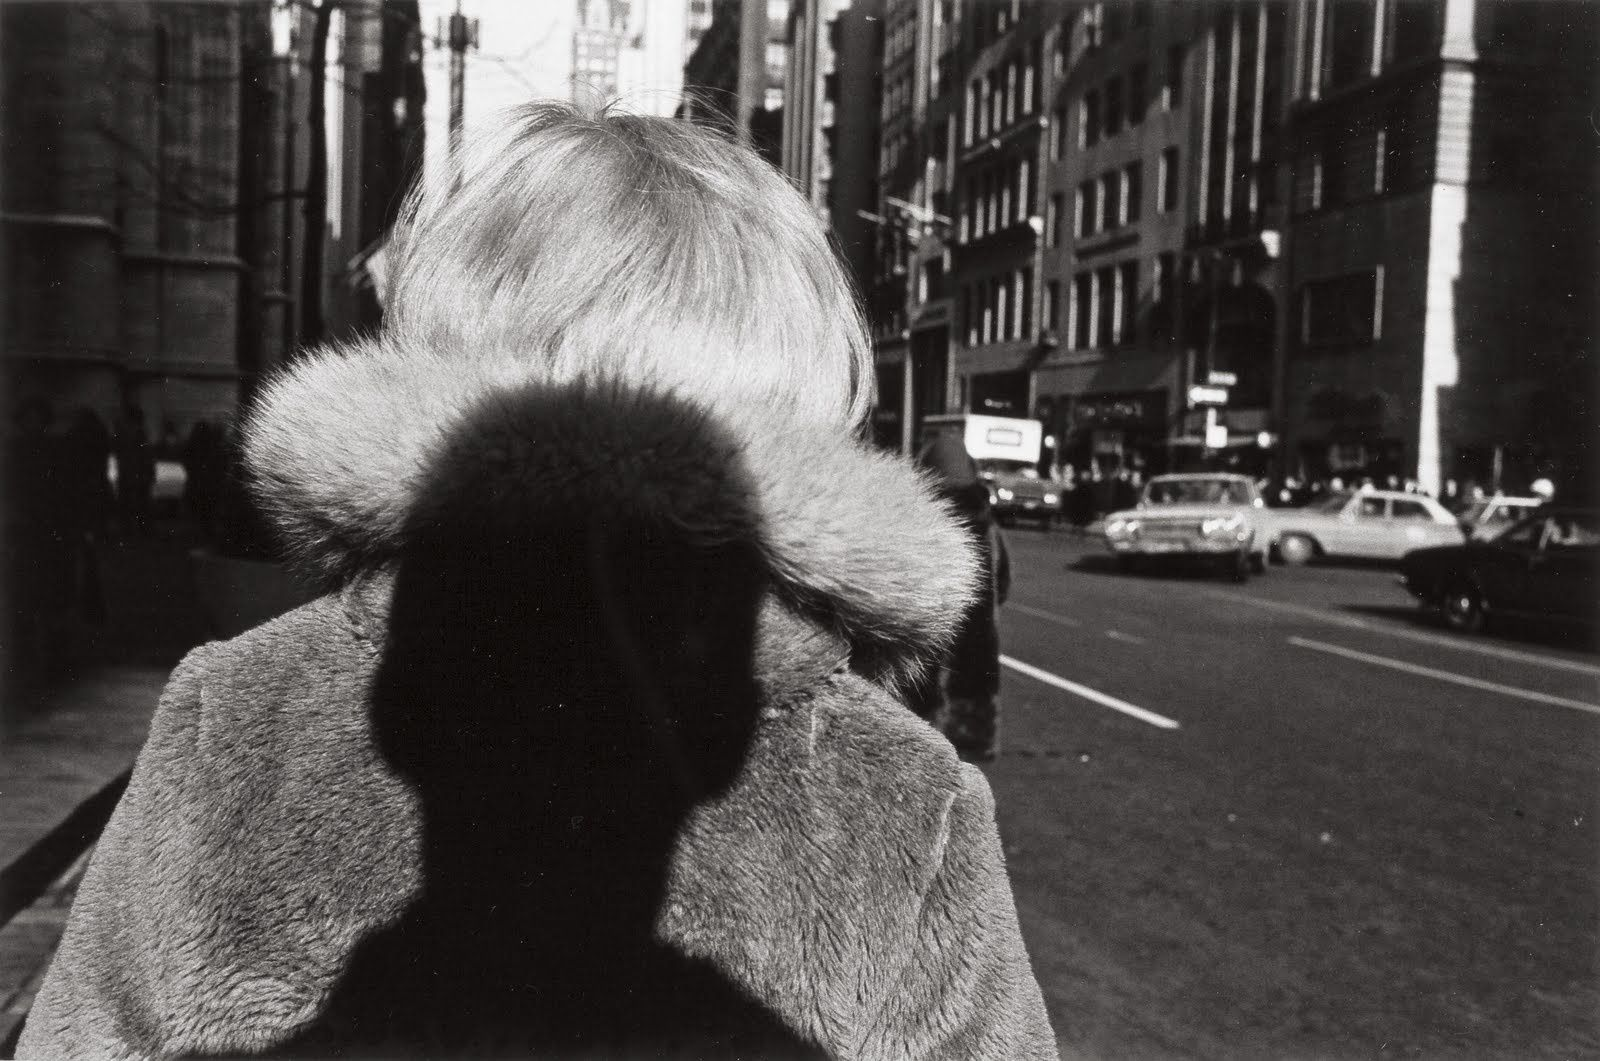 Photo by Lee Friedlander - Via: thisisanauthorsblog.wordpress.com